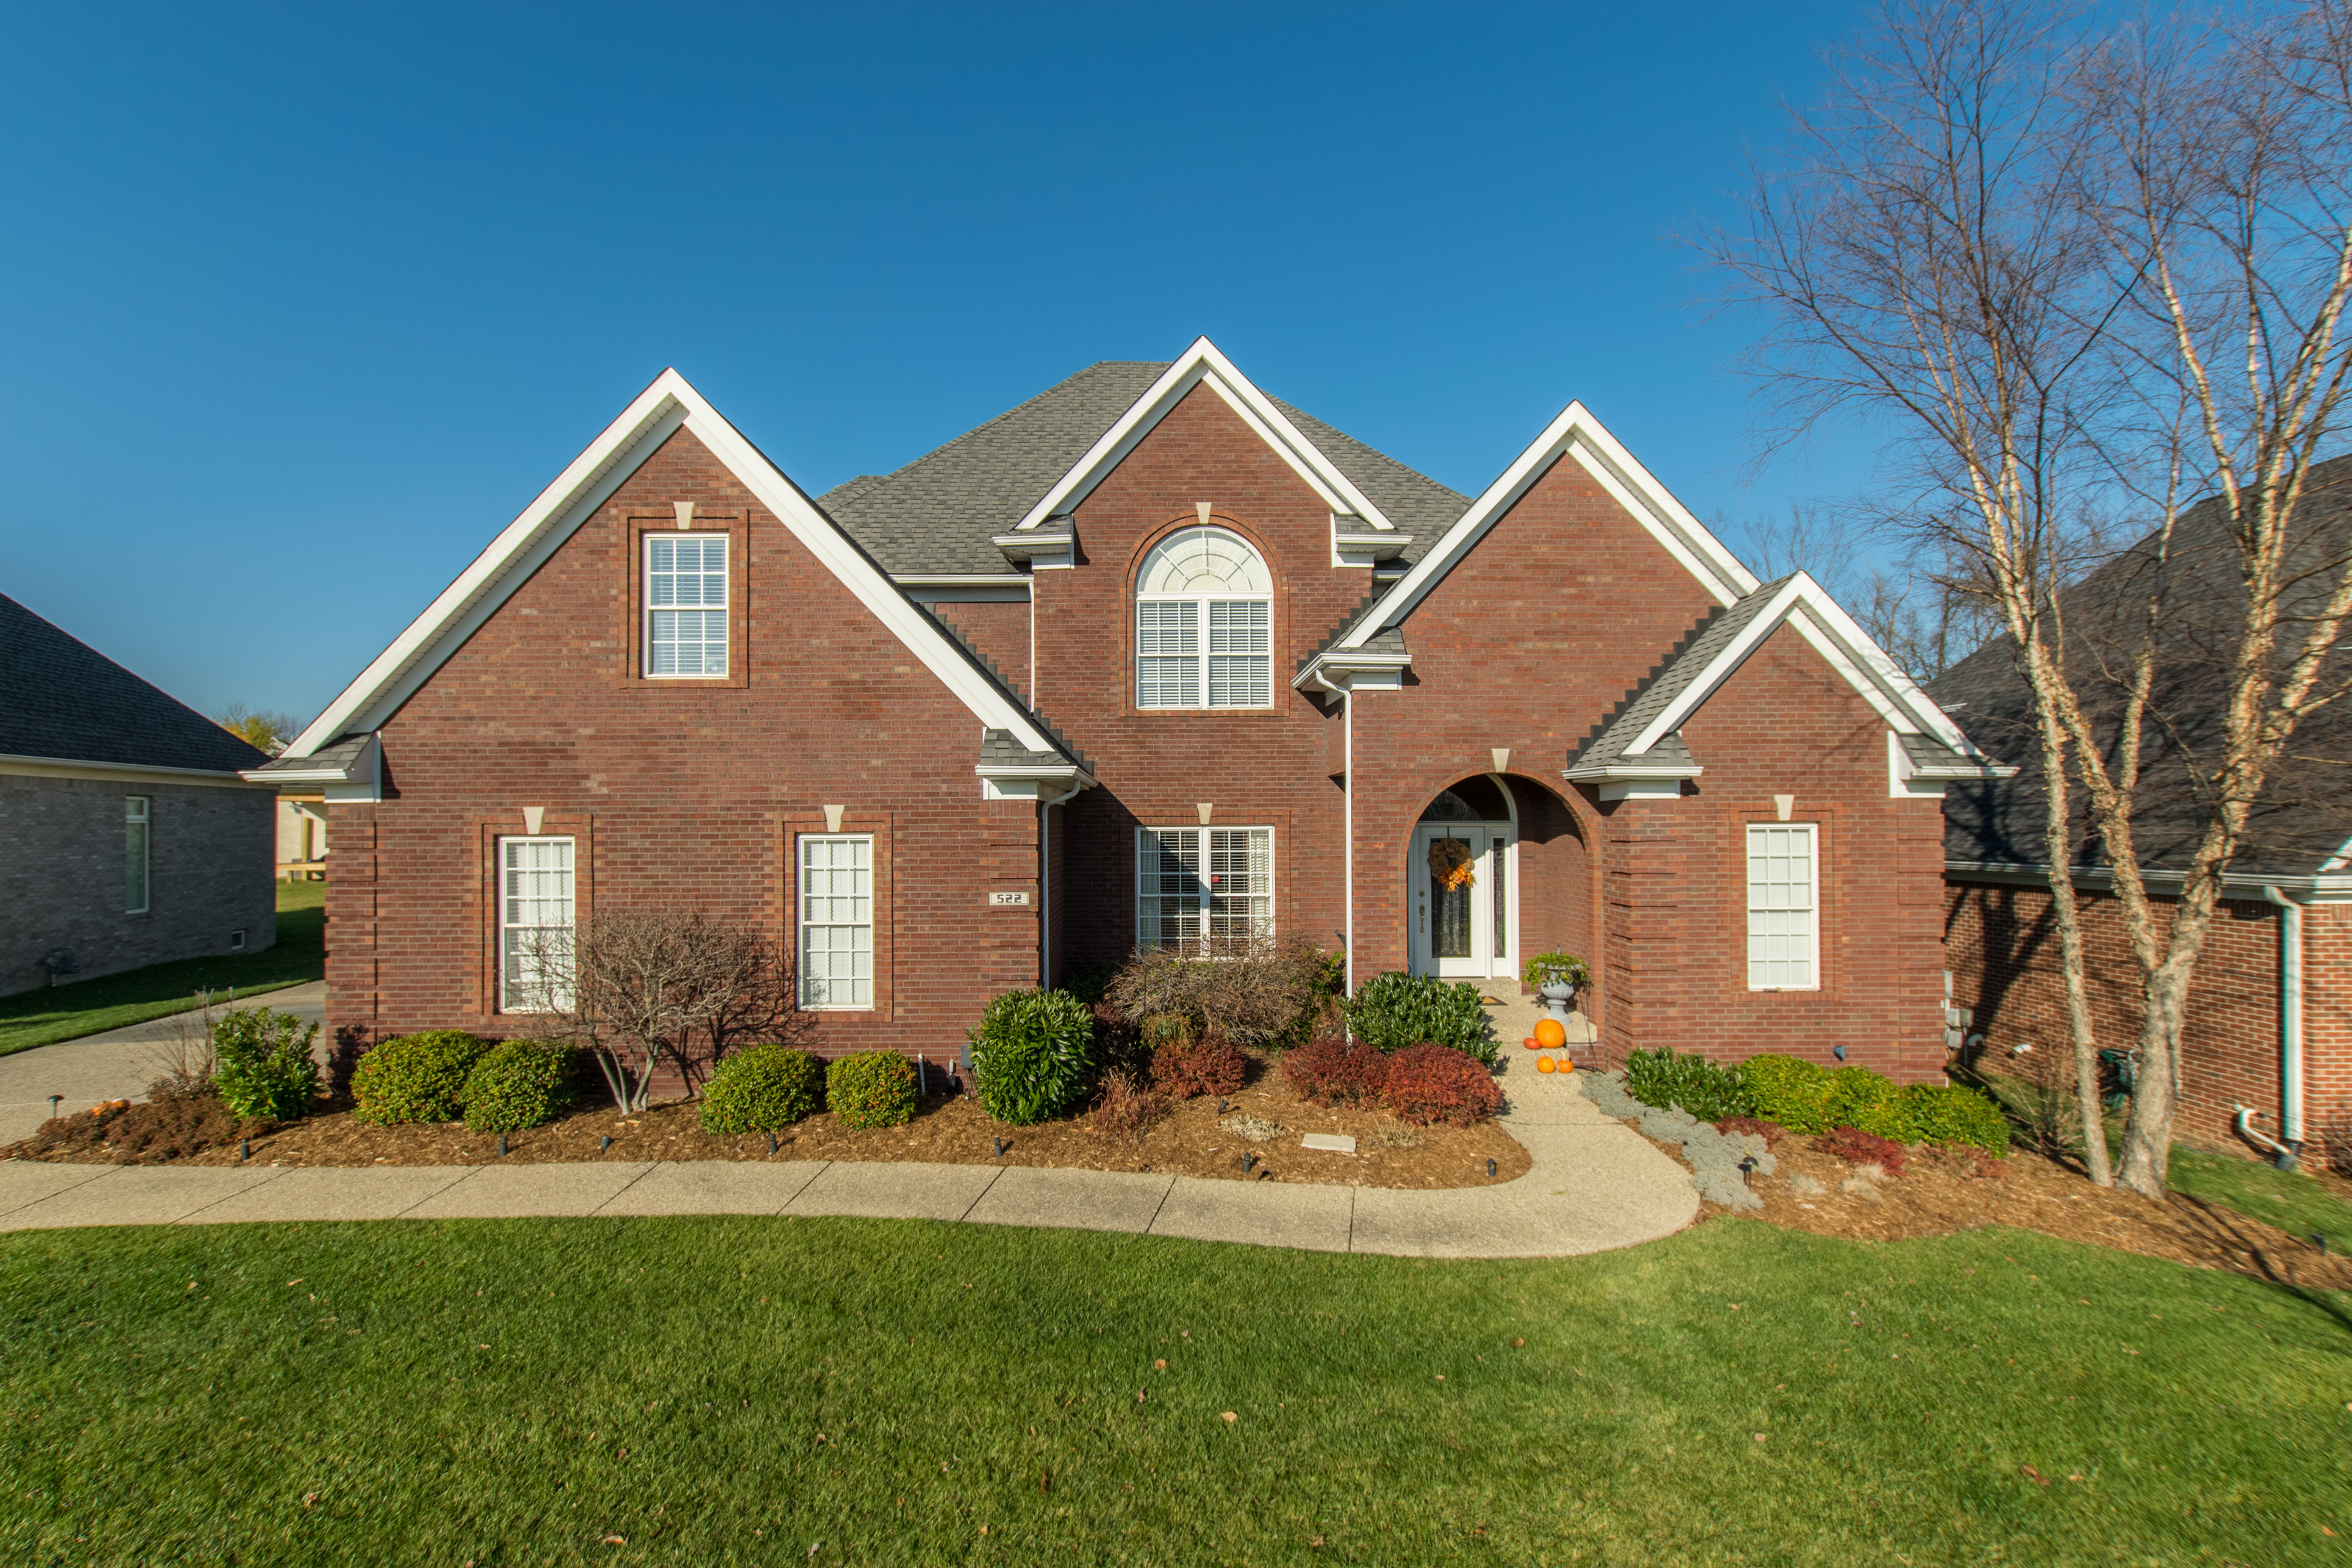 Single Family Home for Sale at 522 Gablewood Circle Louisville, Kentucky 40245 United States